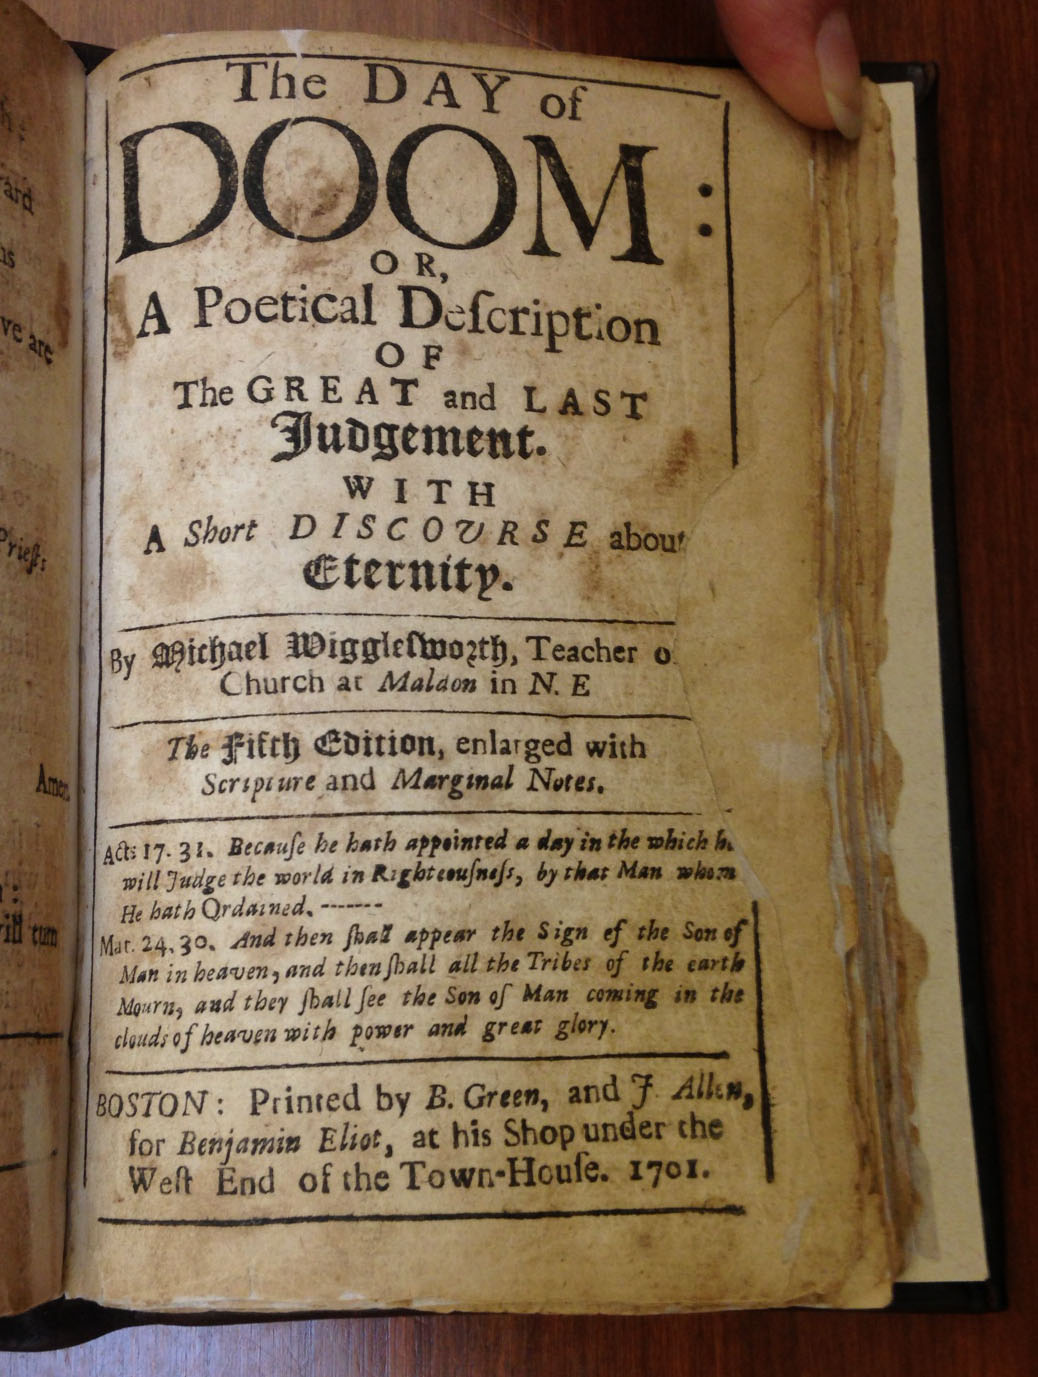 The title page to Michael Wigglesworth's The Day of Doom (Boston, 1701). It is bound, as issued, following the second edition of Wigglesworth's other verse collection, Meat Out of the Eater (Boston, 1689).